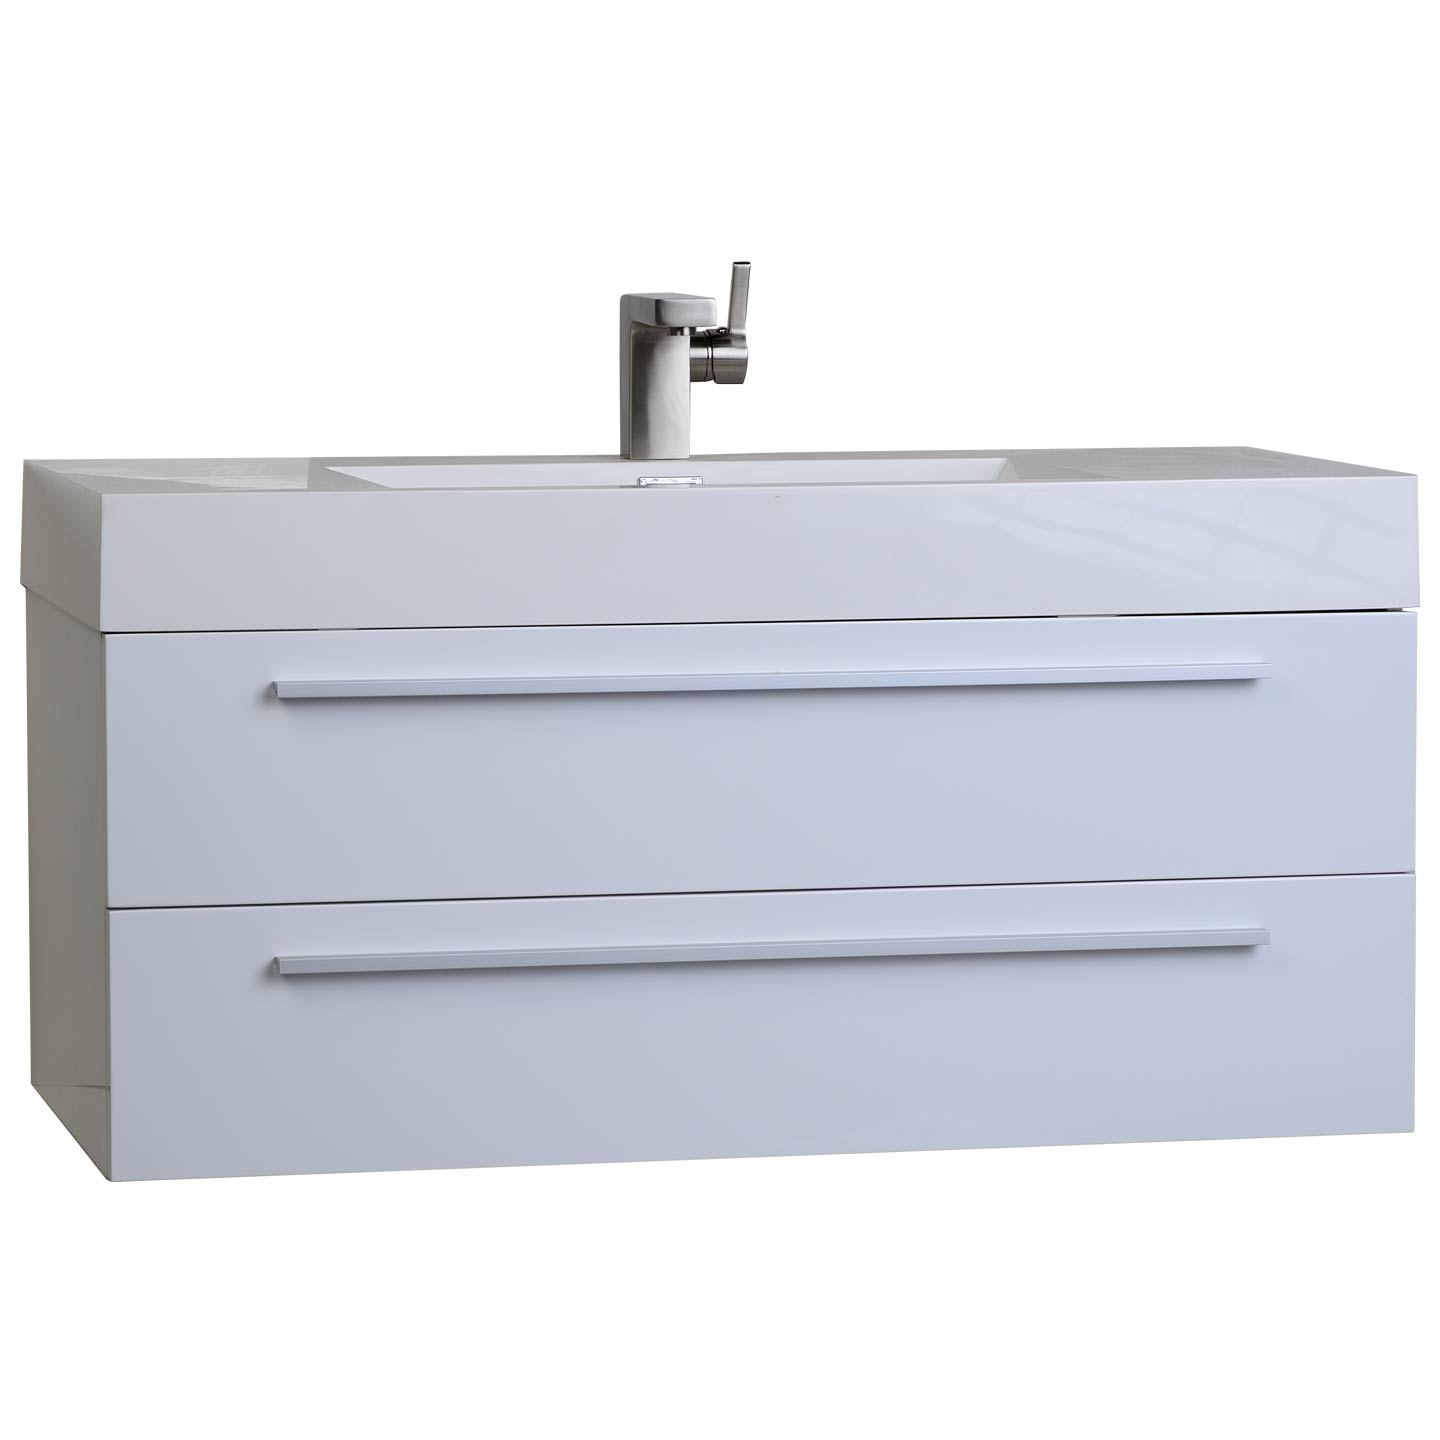 355 wall mount modern bathroom vanity in high gloss white tn m900 hgw